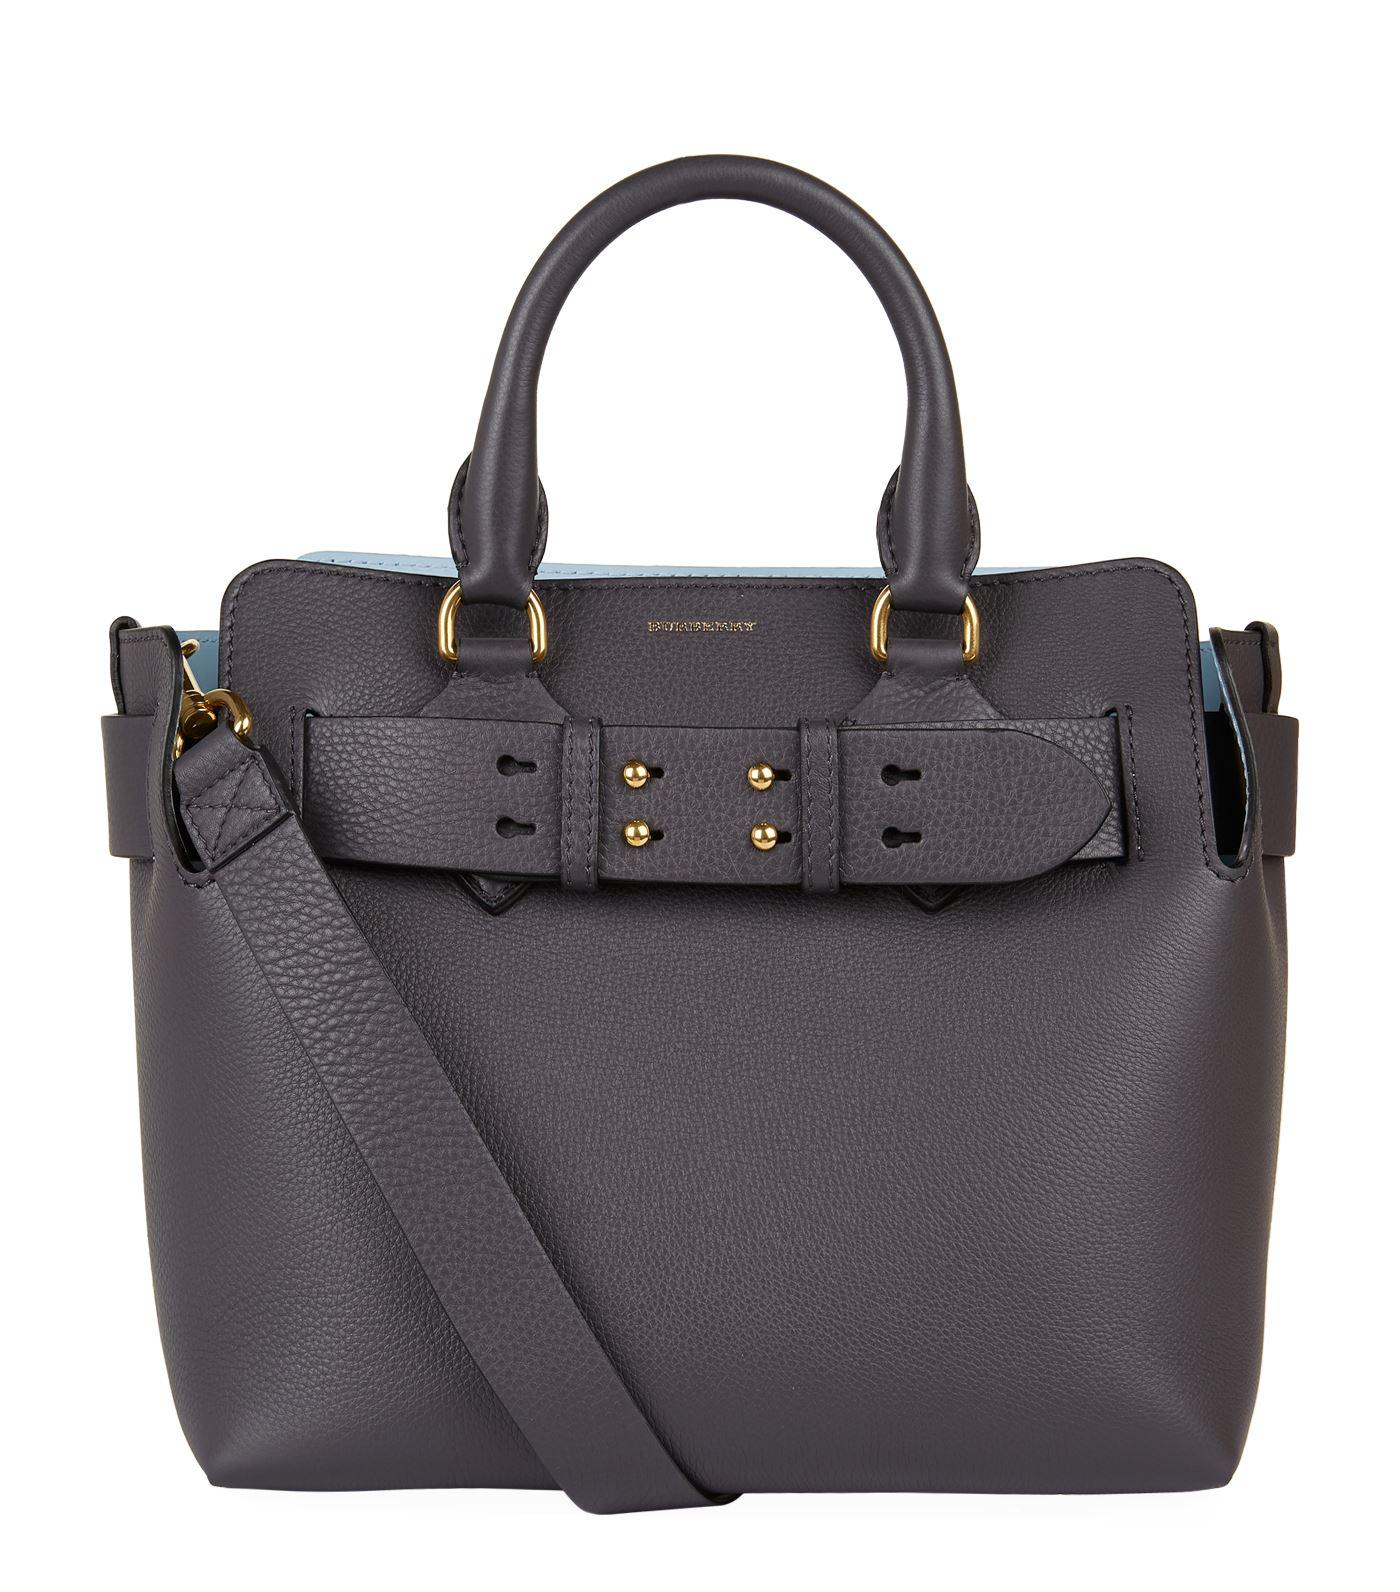 92e4b101dc13 Lyst - Burberry The Small Leather Belt Bag in Gray - Save 30%